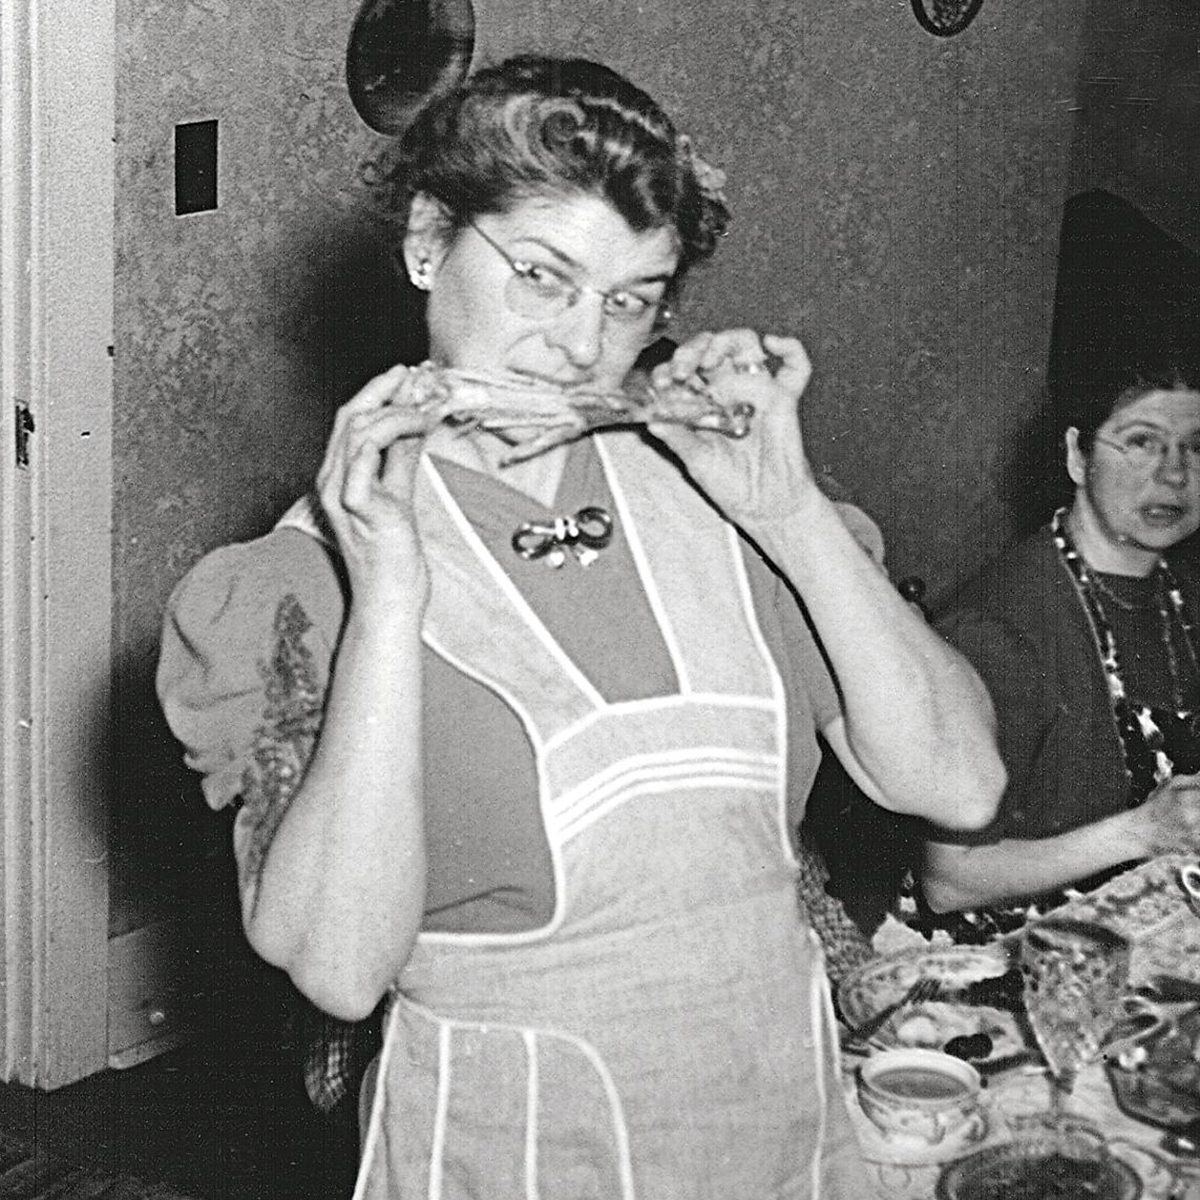 1930s woman jokingly biting a turkey leg while family looks on in confusion